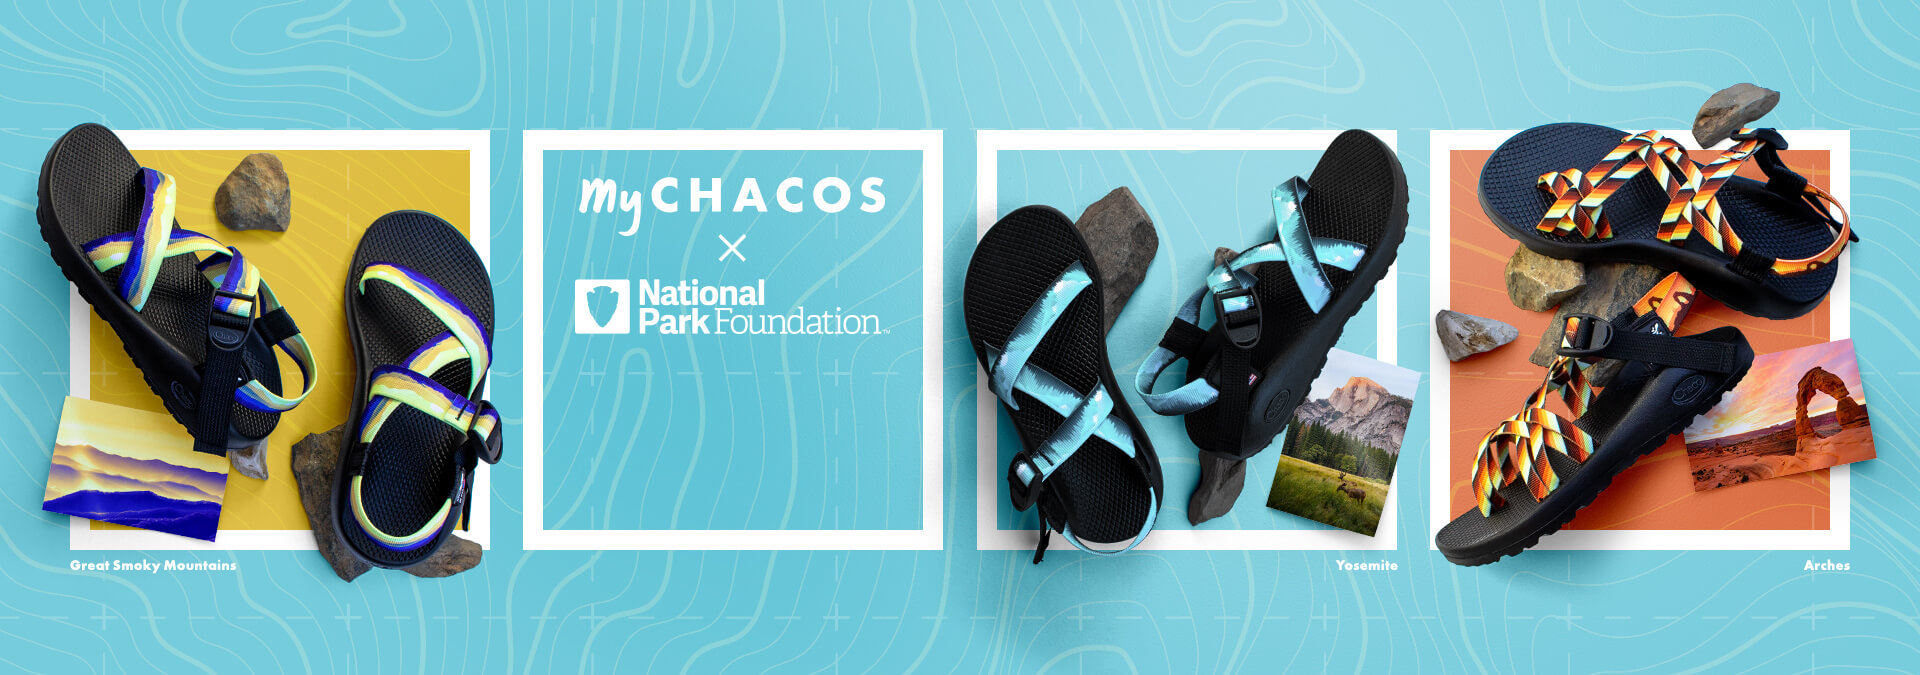 MyChacos X National Park Foundation Collection: colors reminiscent of Great Smoky Mountains, Yosemite and Arches.